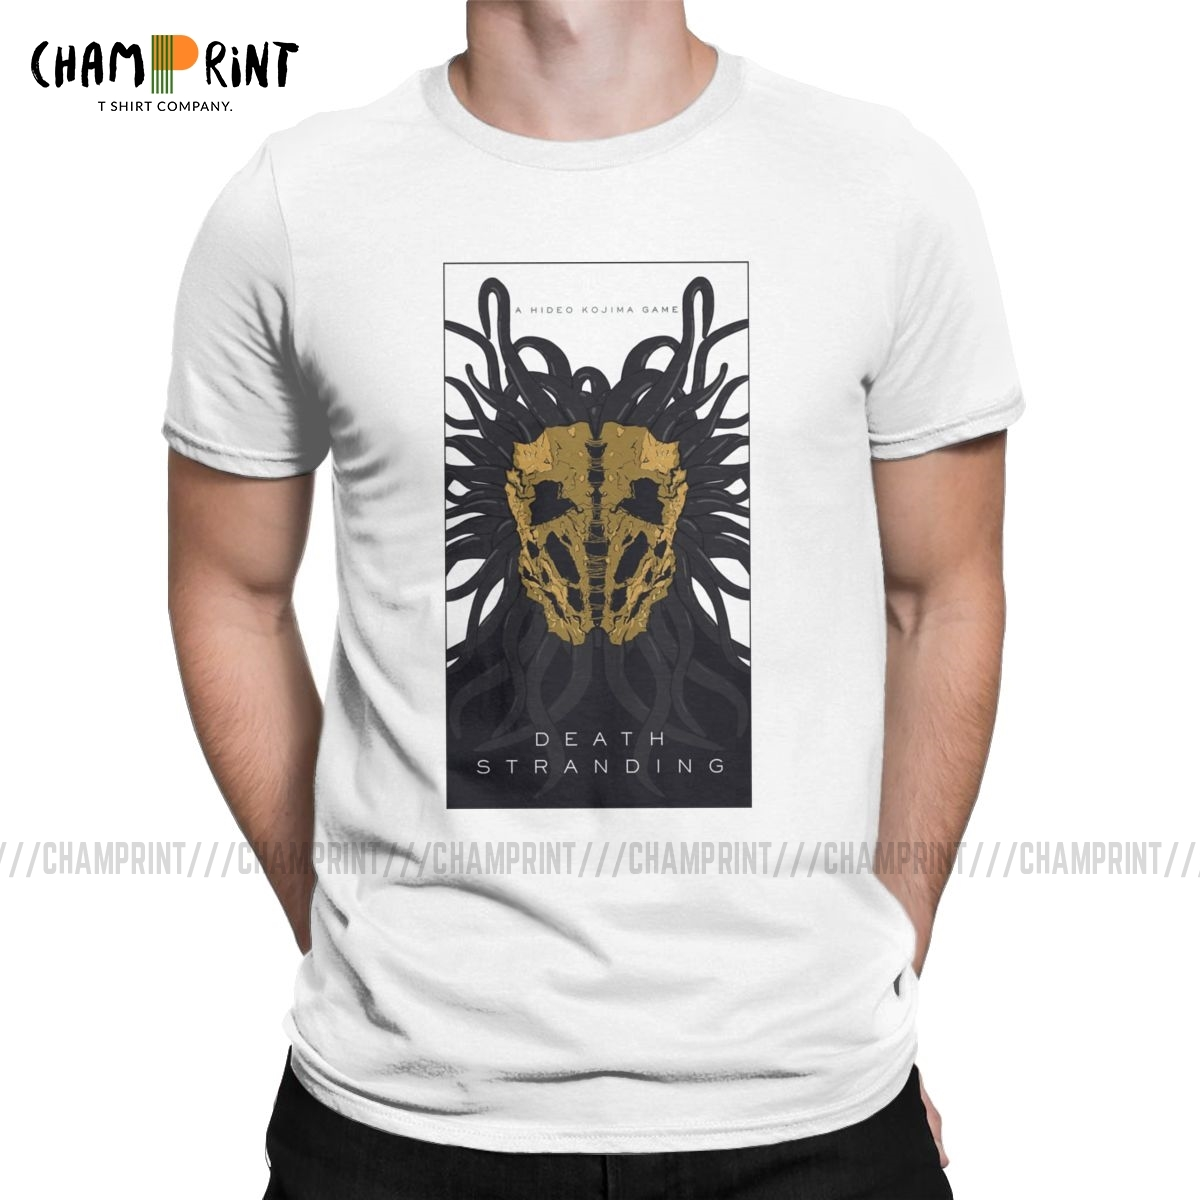 Death Stranding 4th Trailer Creature Men's T Shirts Kojima Productions Amazing Tee Shirt Round Neck T-Shirts Printed Clothes